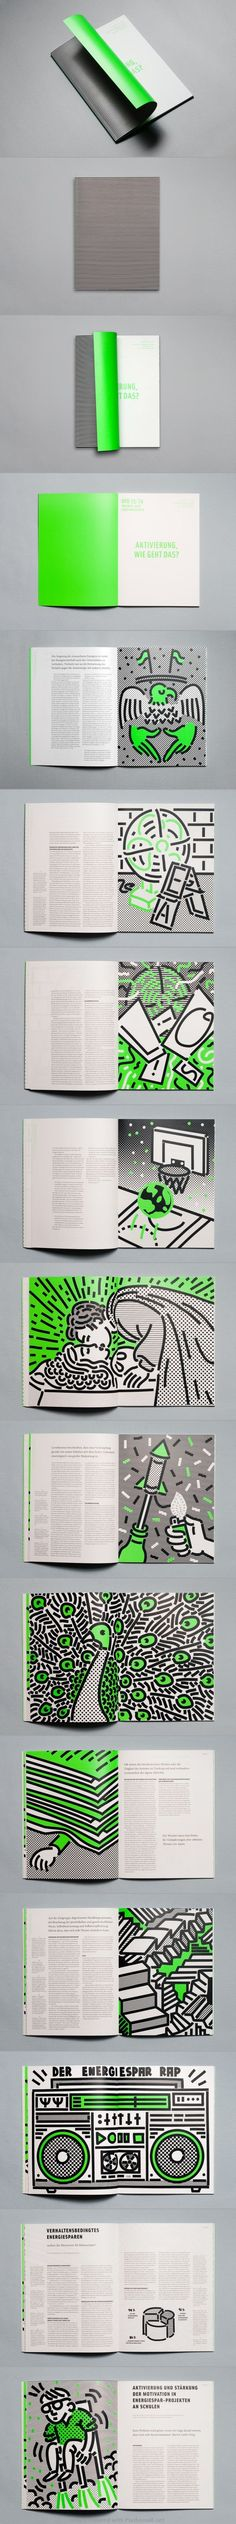 Editorial layout with amazing illustrations and color scheme